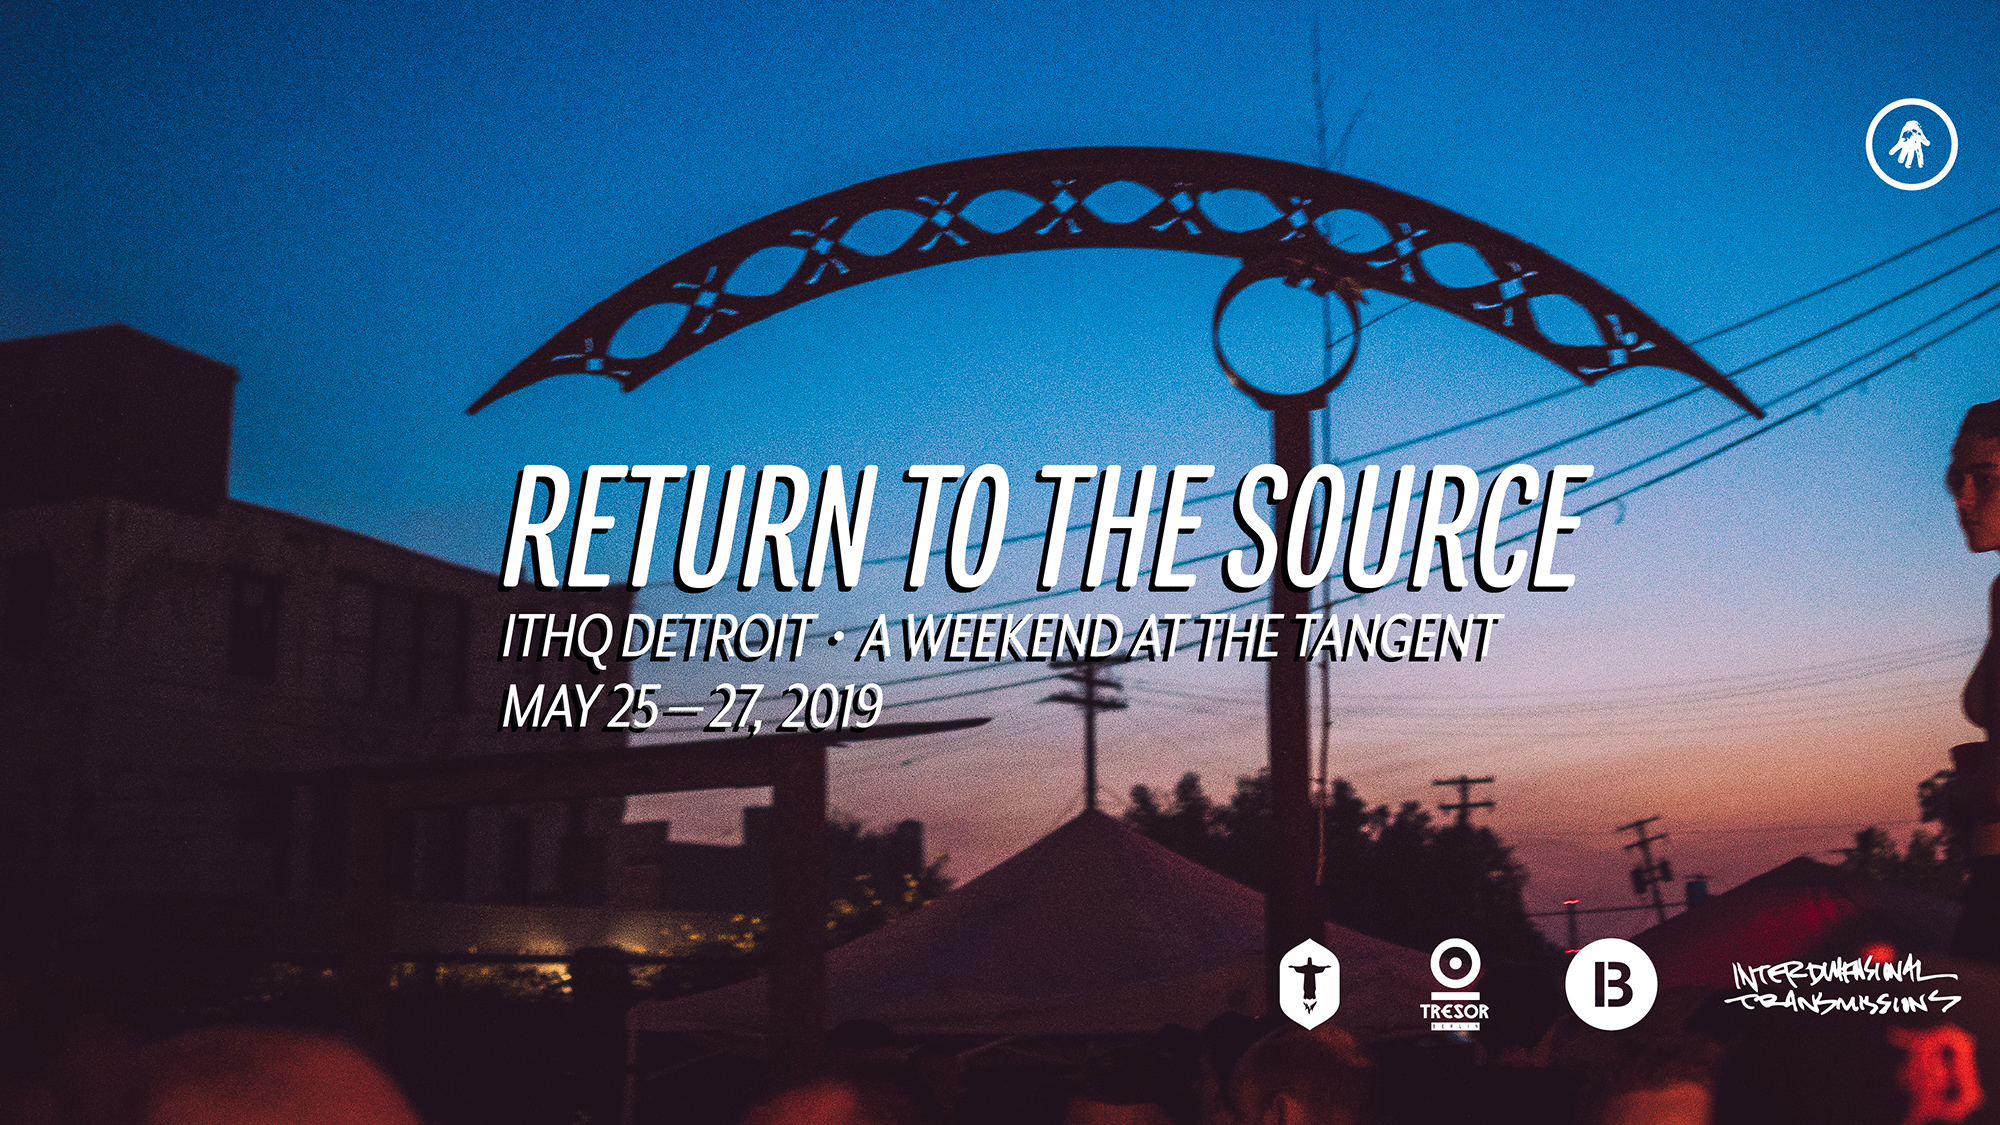 Return to the Source: May 25-27, 2019